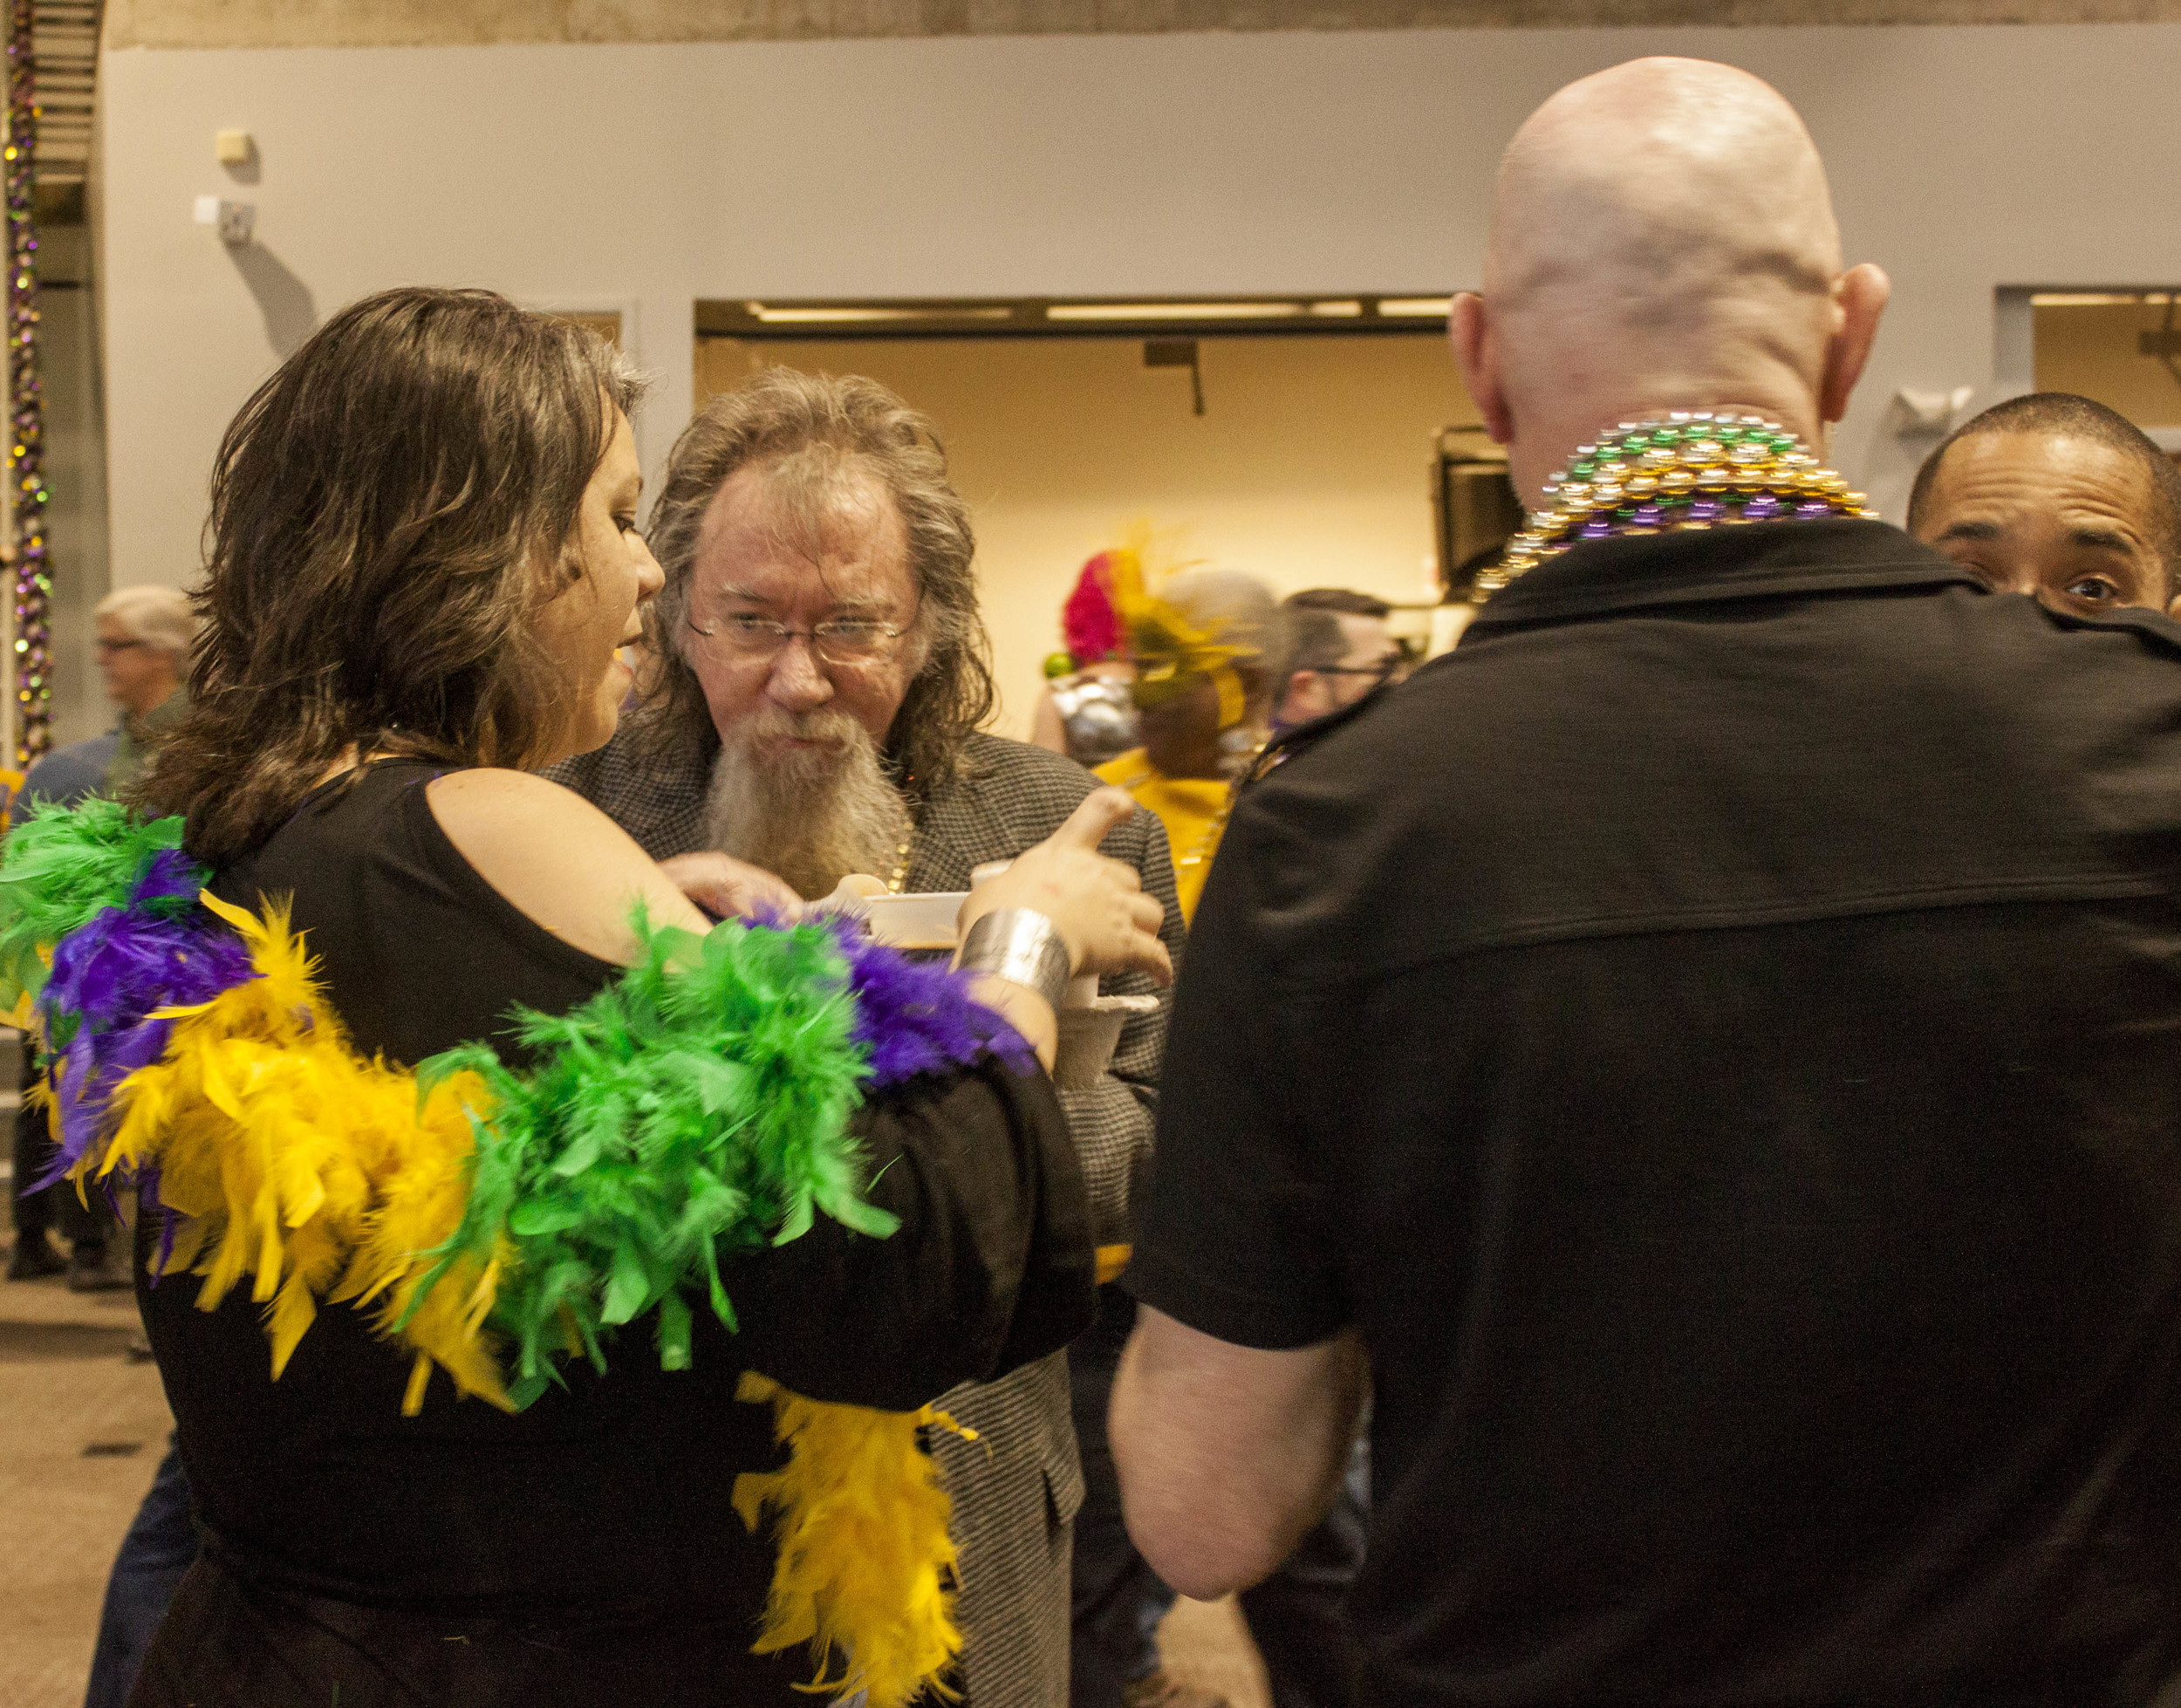 Gumbo Tasting, Jazz, and craft beer were enjoyed by all guests to the Tennessee Equality Project's 5th Annual Gumbo Contest (February 8, 2015)